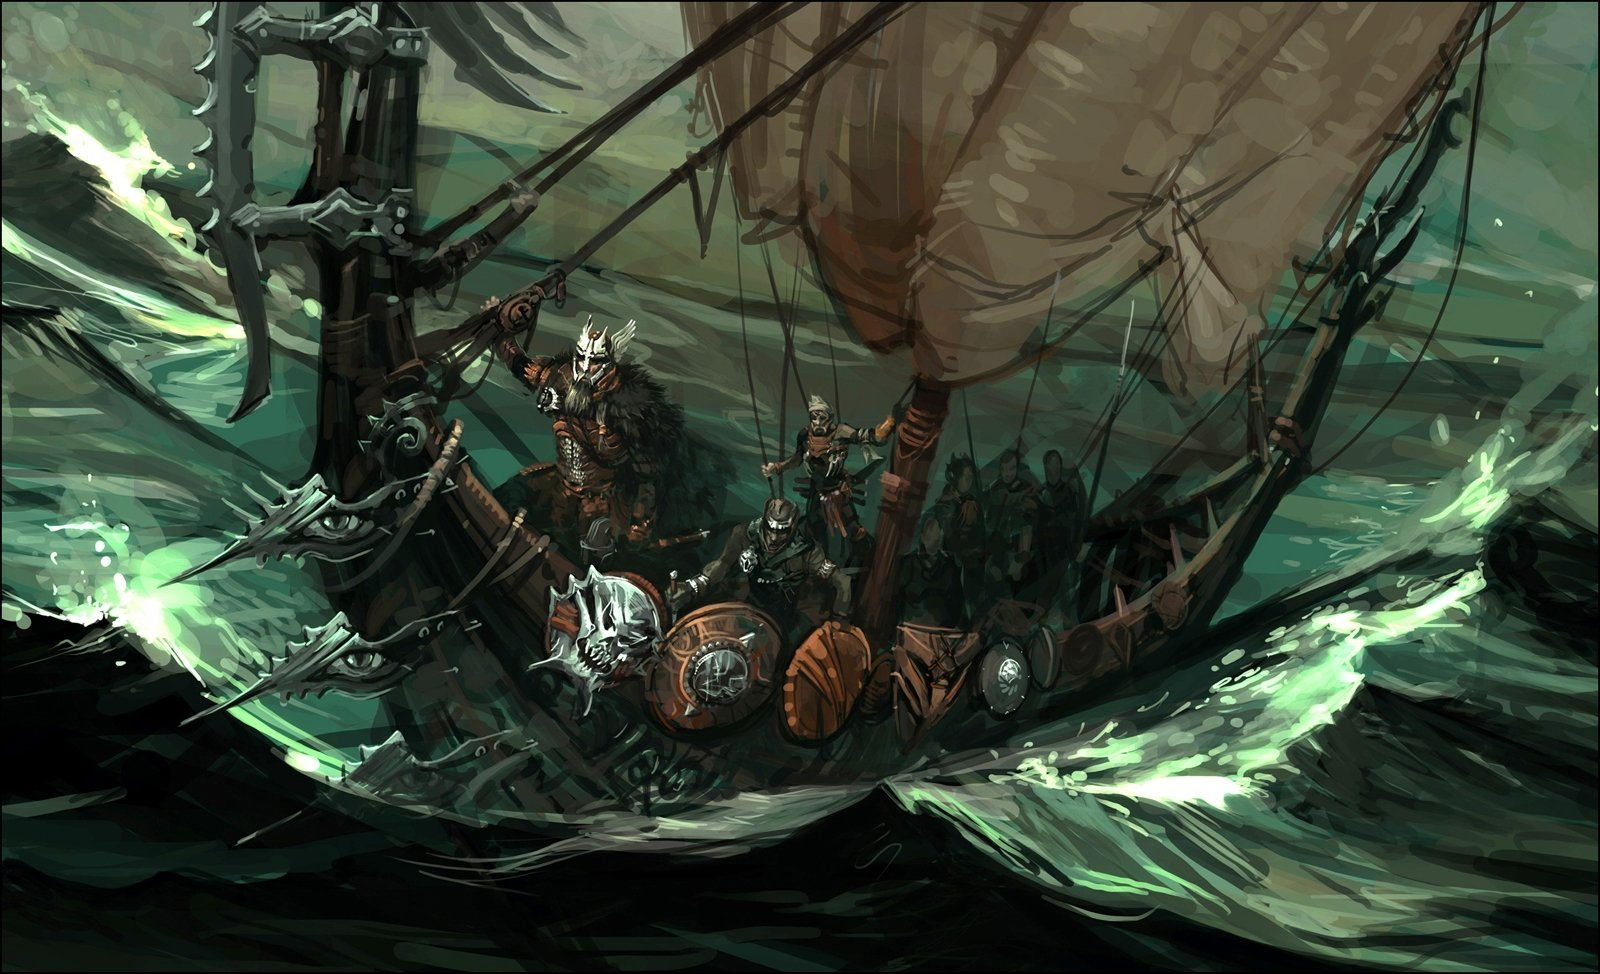 Viking Ship Wallpaper Hd Images Pictures   Becuo 1600x974